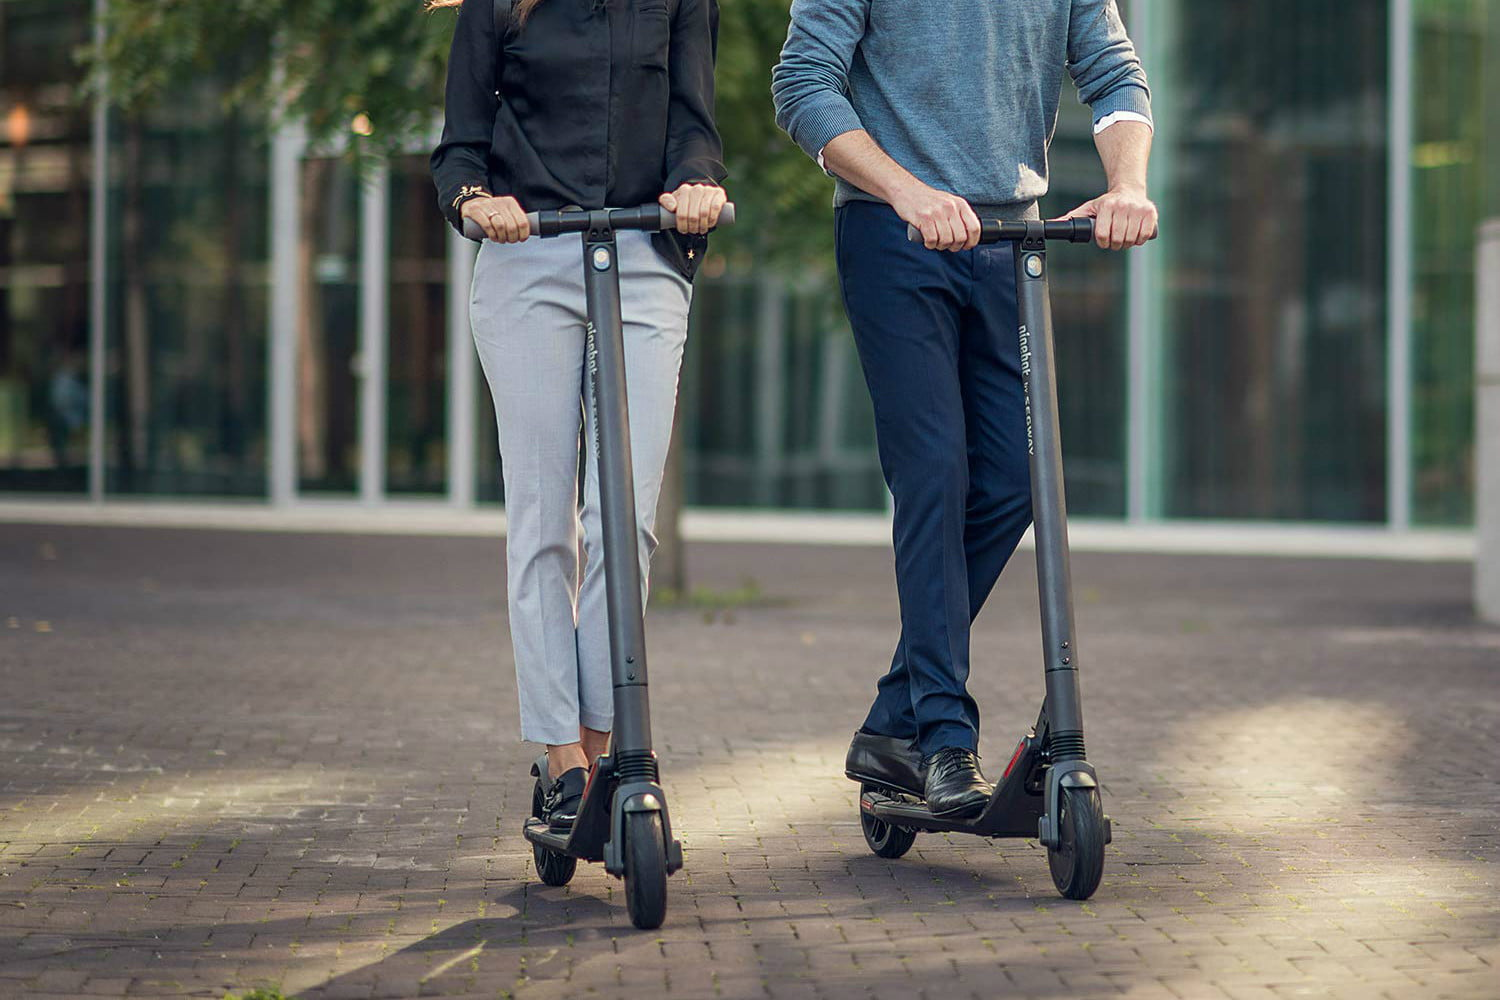 Get $100 Off the Segway Ninebot ES2 Electric Kick Scooter at